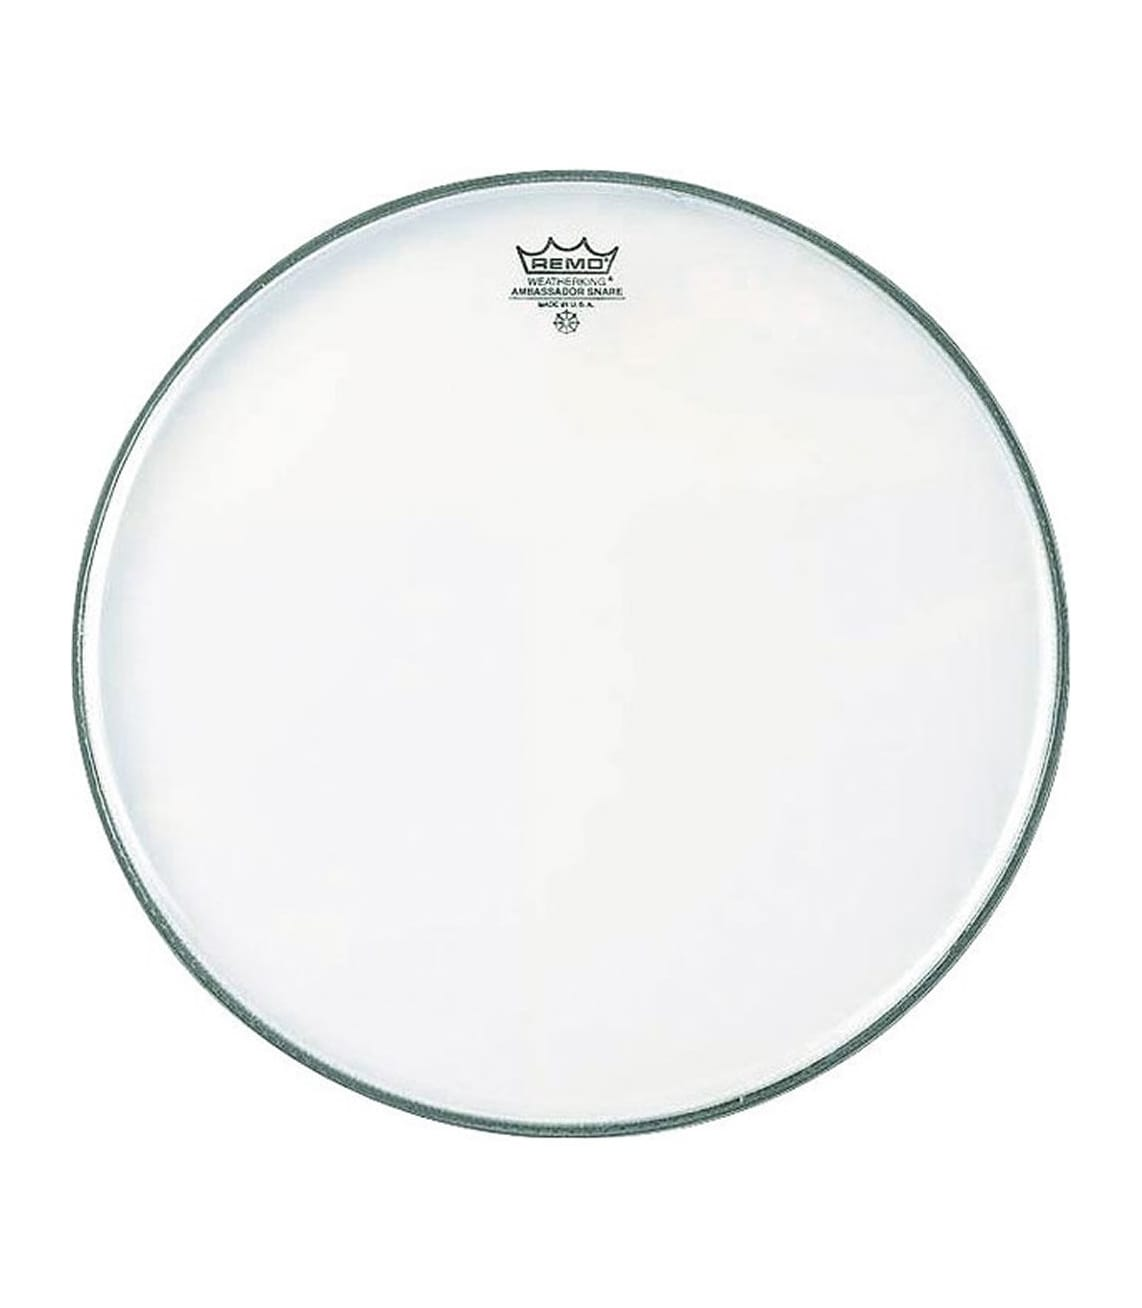 Remo - Snare DIPLOMAT Hazy 14 Diameter - Melody House Musical Instruments